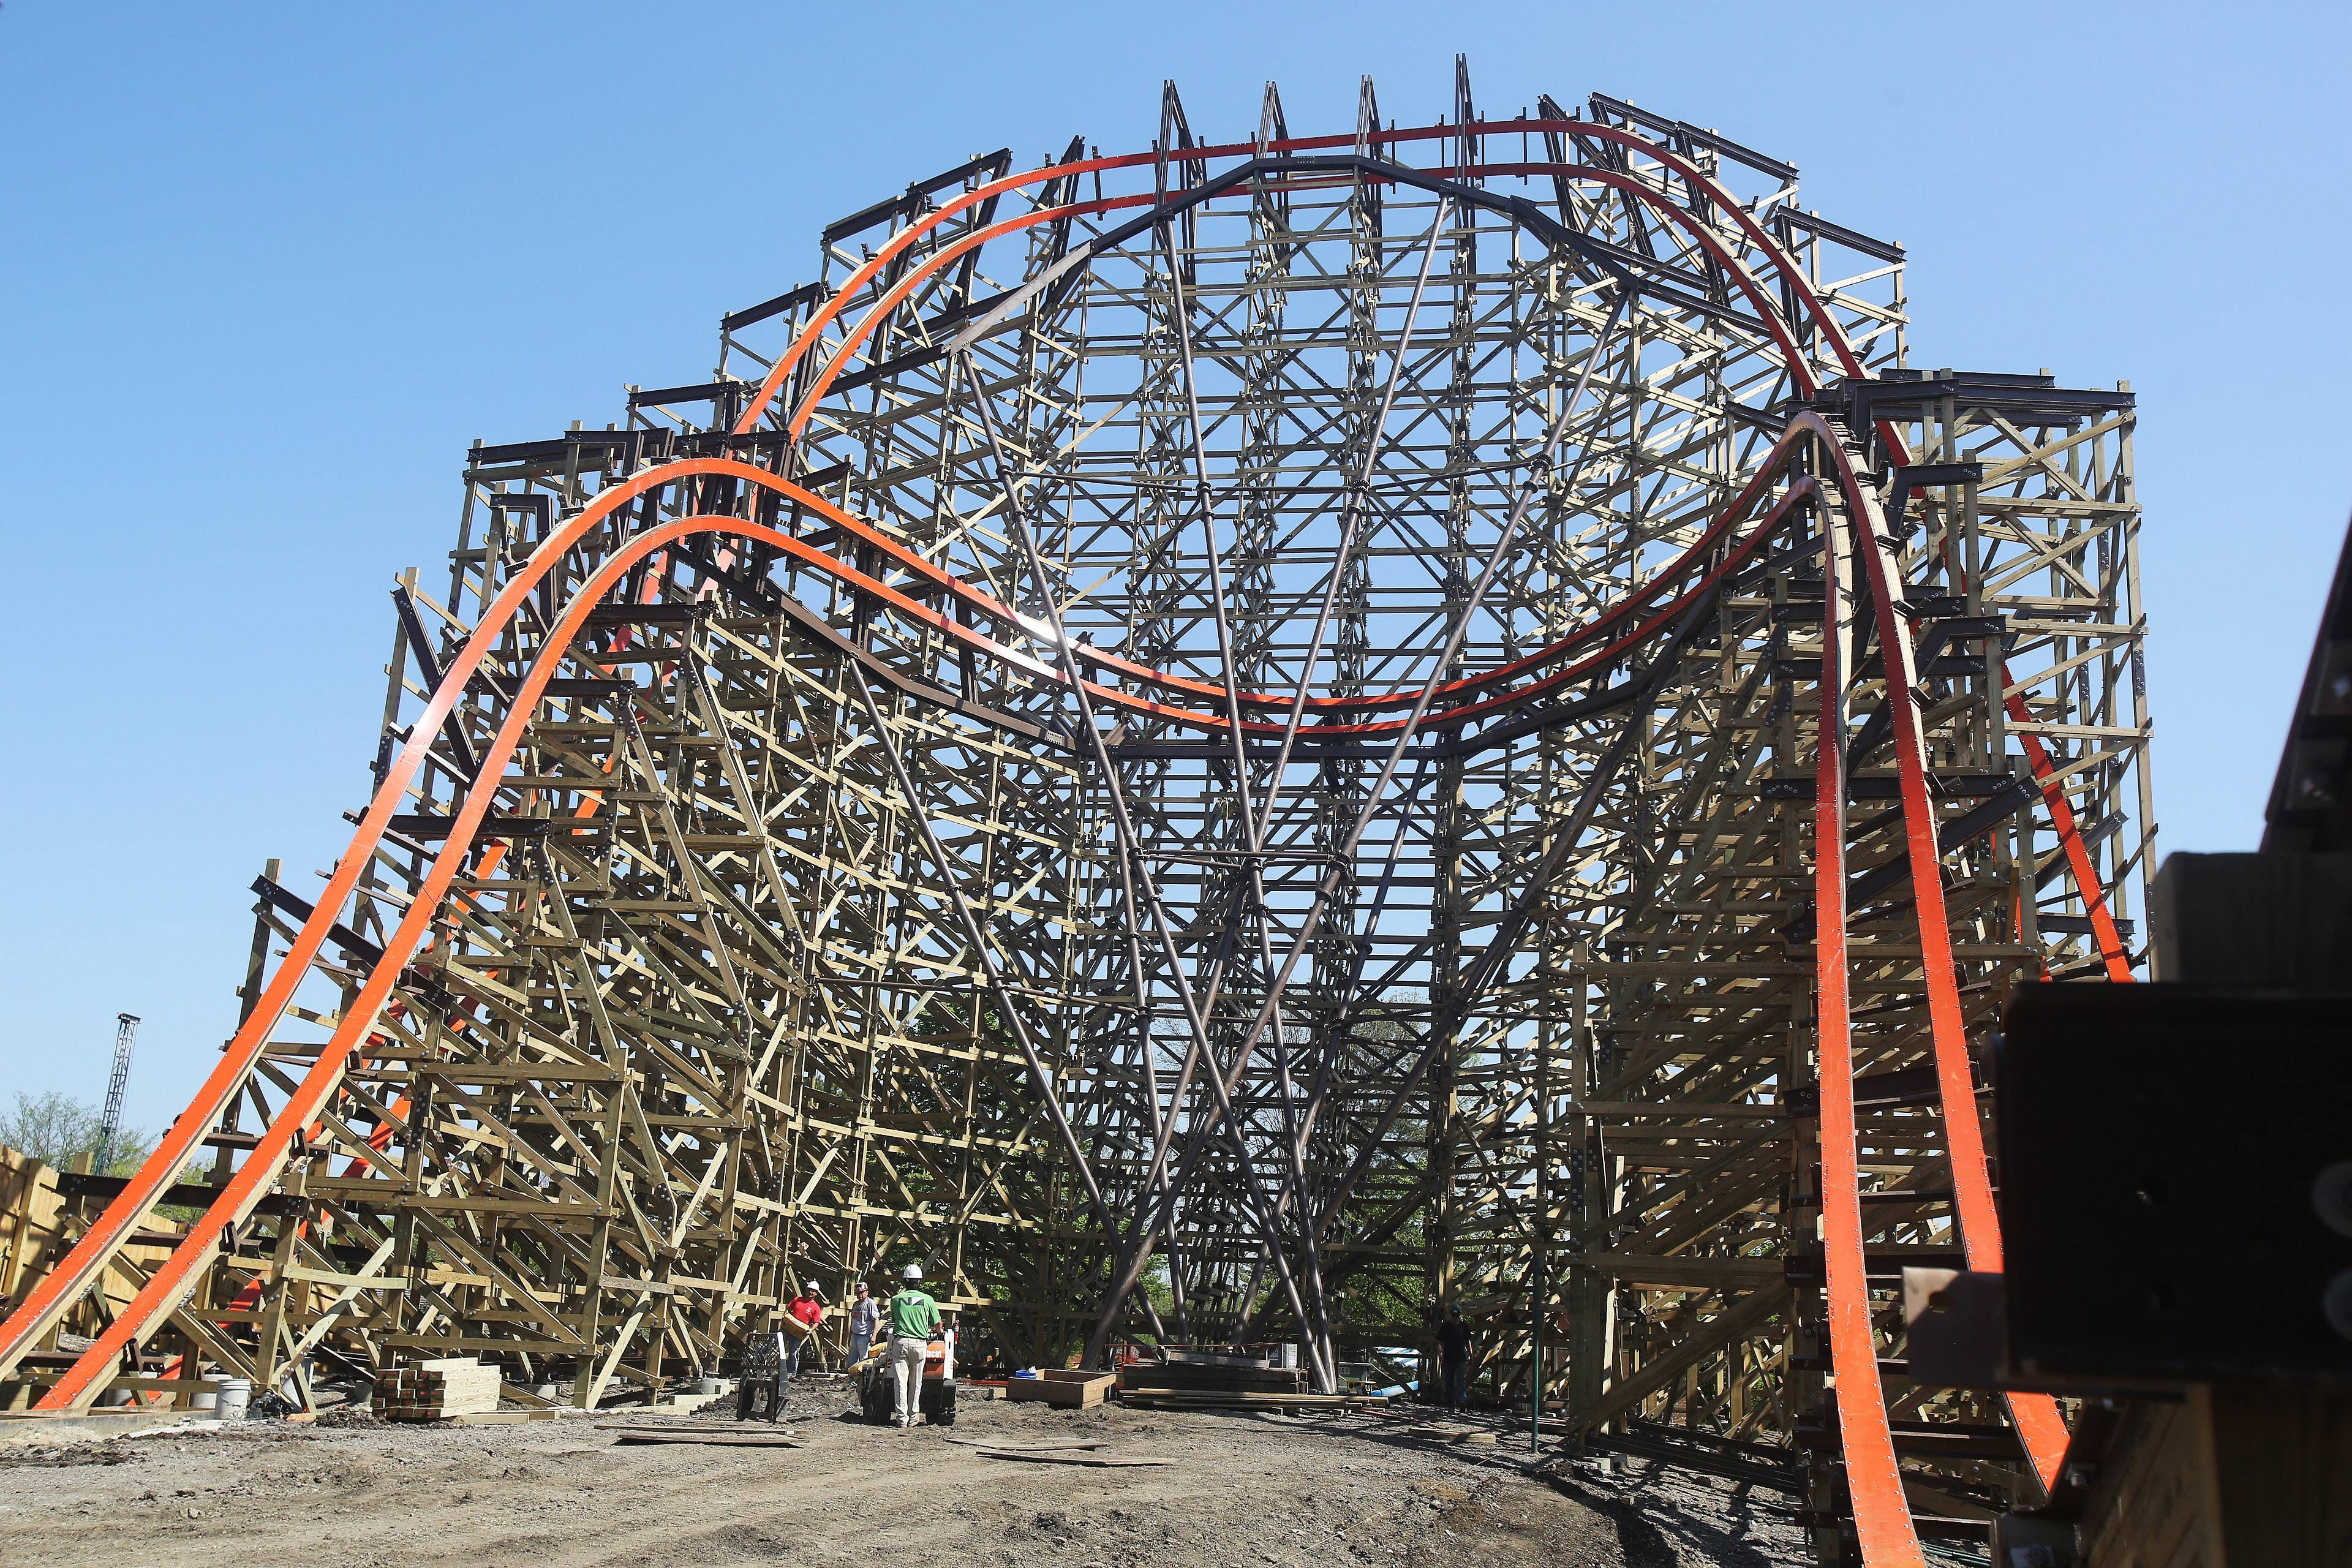 The wooden Goliath will be among Six Flags Great America's fastest roller coasters, with a top speed of 72 mph. Among Six Flags' coasters, only the Raging Bull is faster with a speed of 73 mph, officials said.